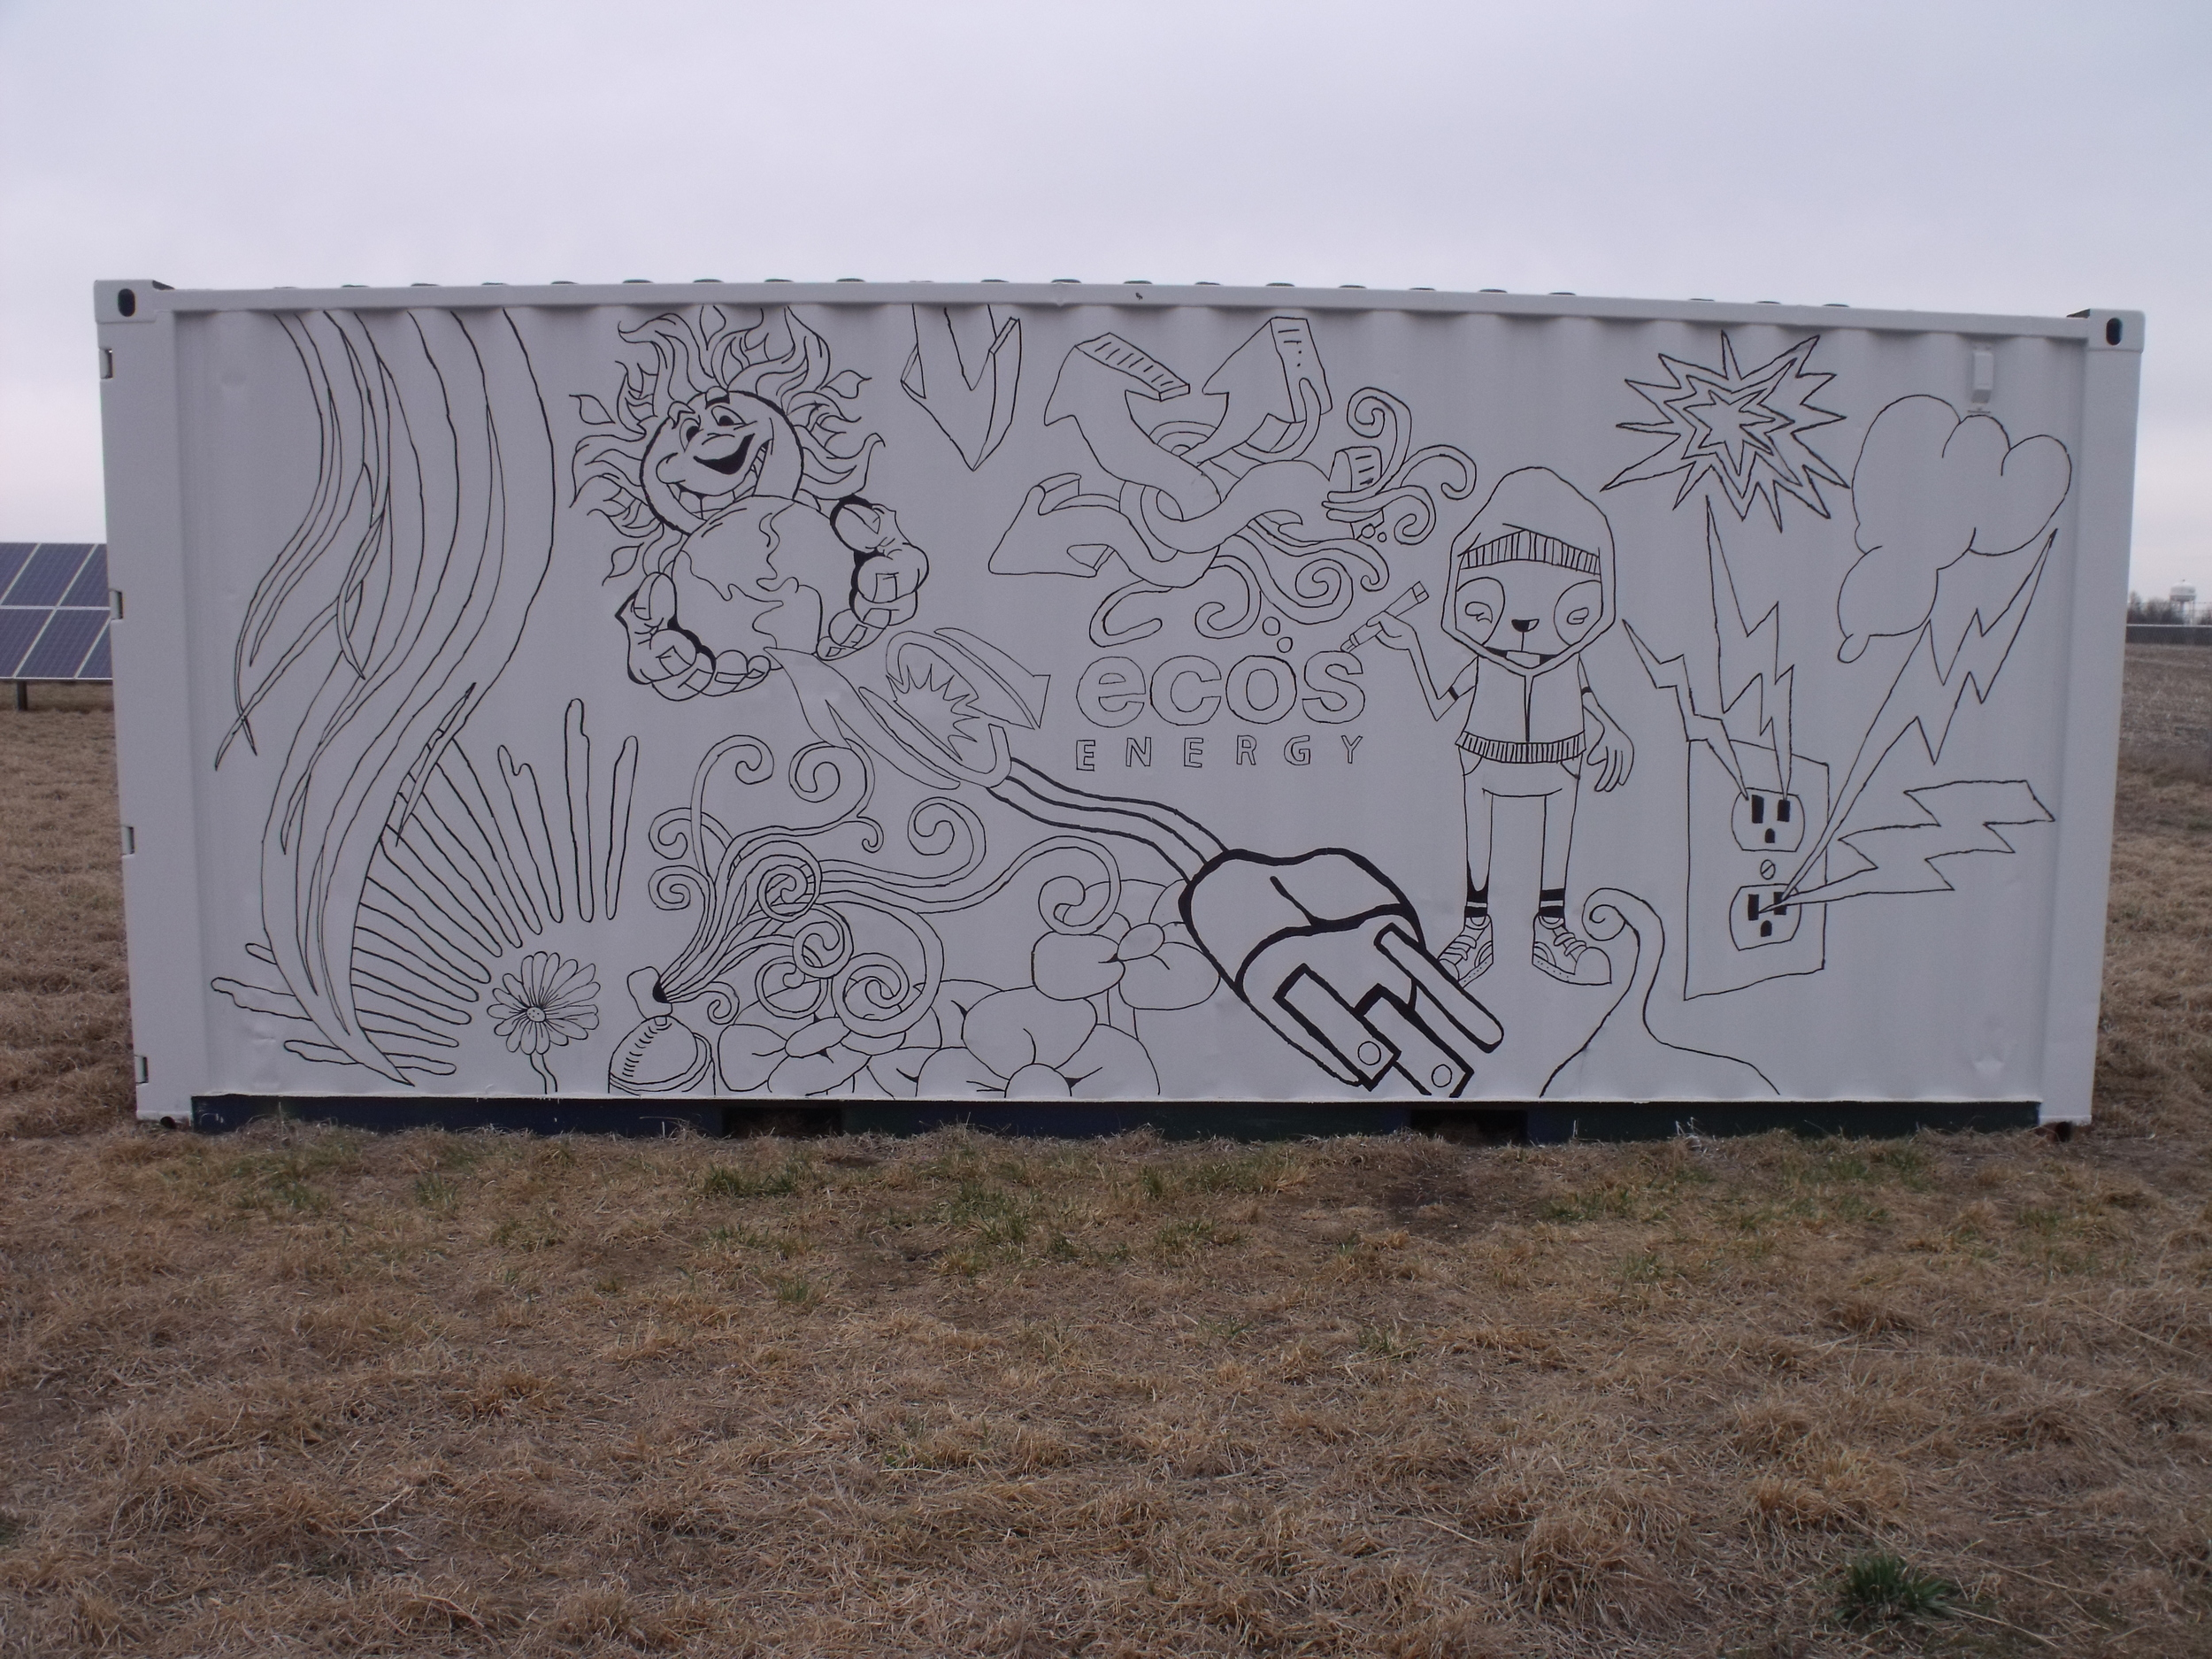 The design was first projected onto the container